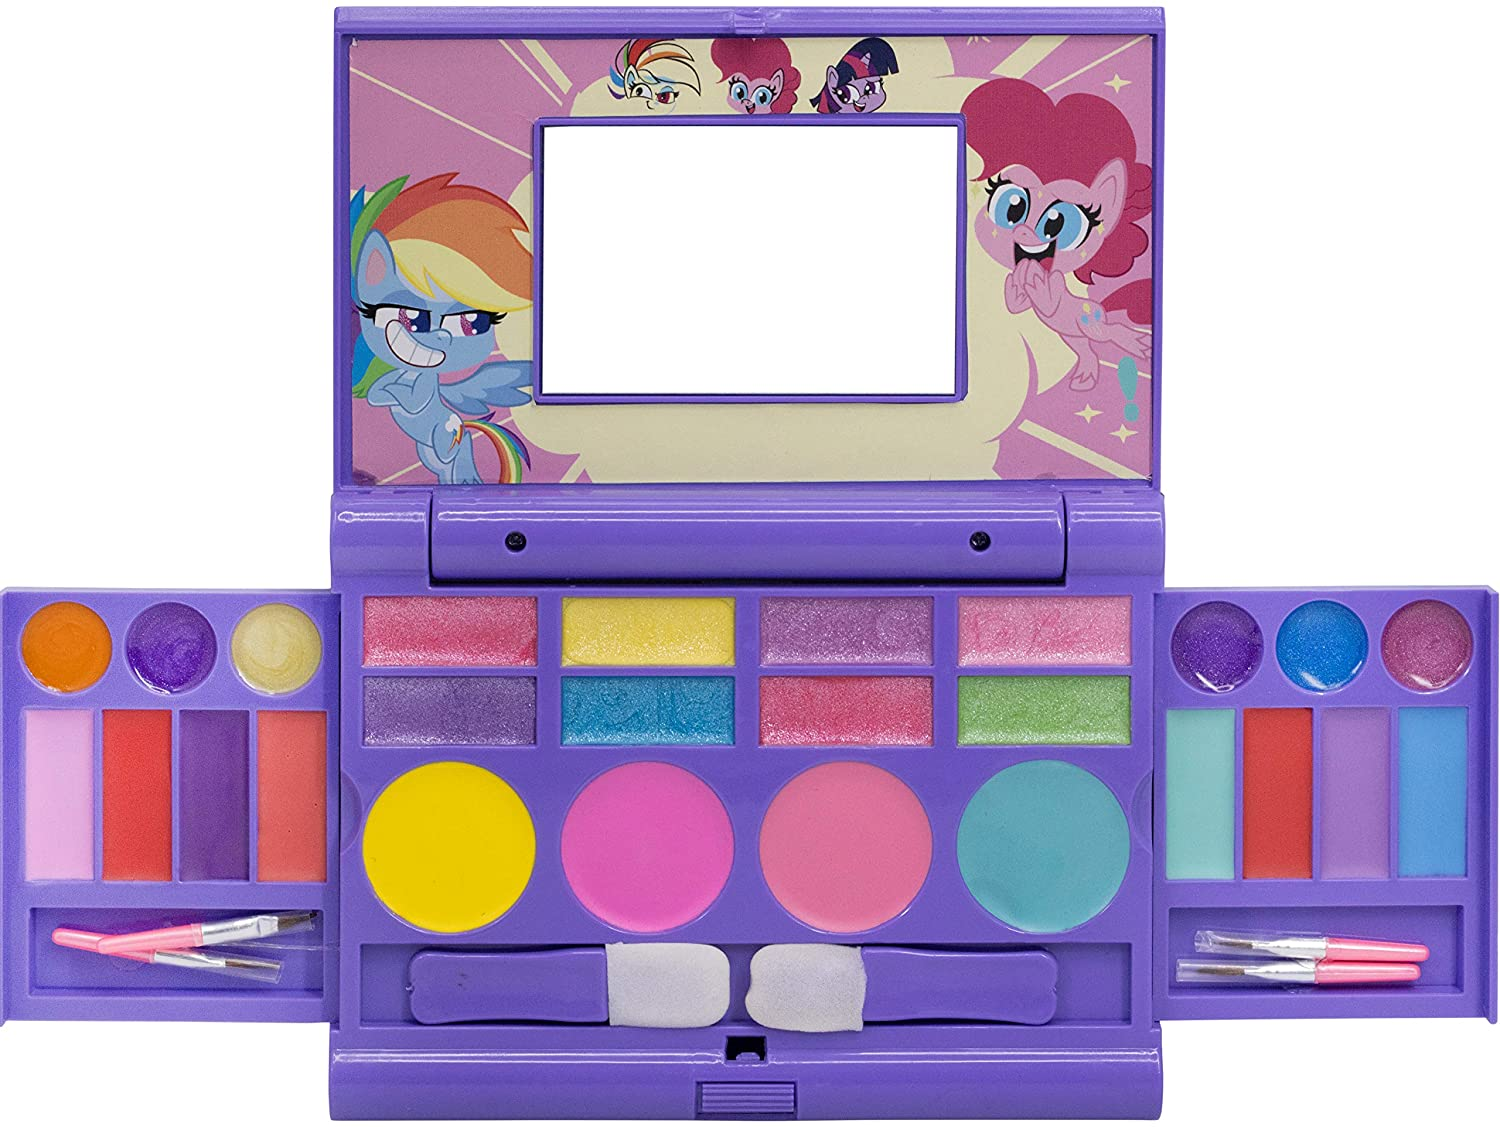 MLP: PL Cosmetic Compact Set 4